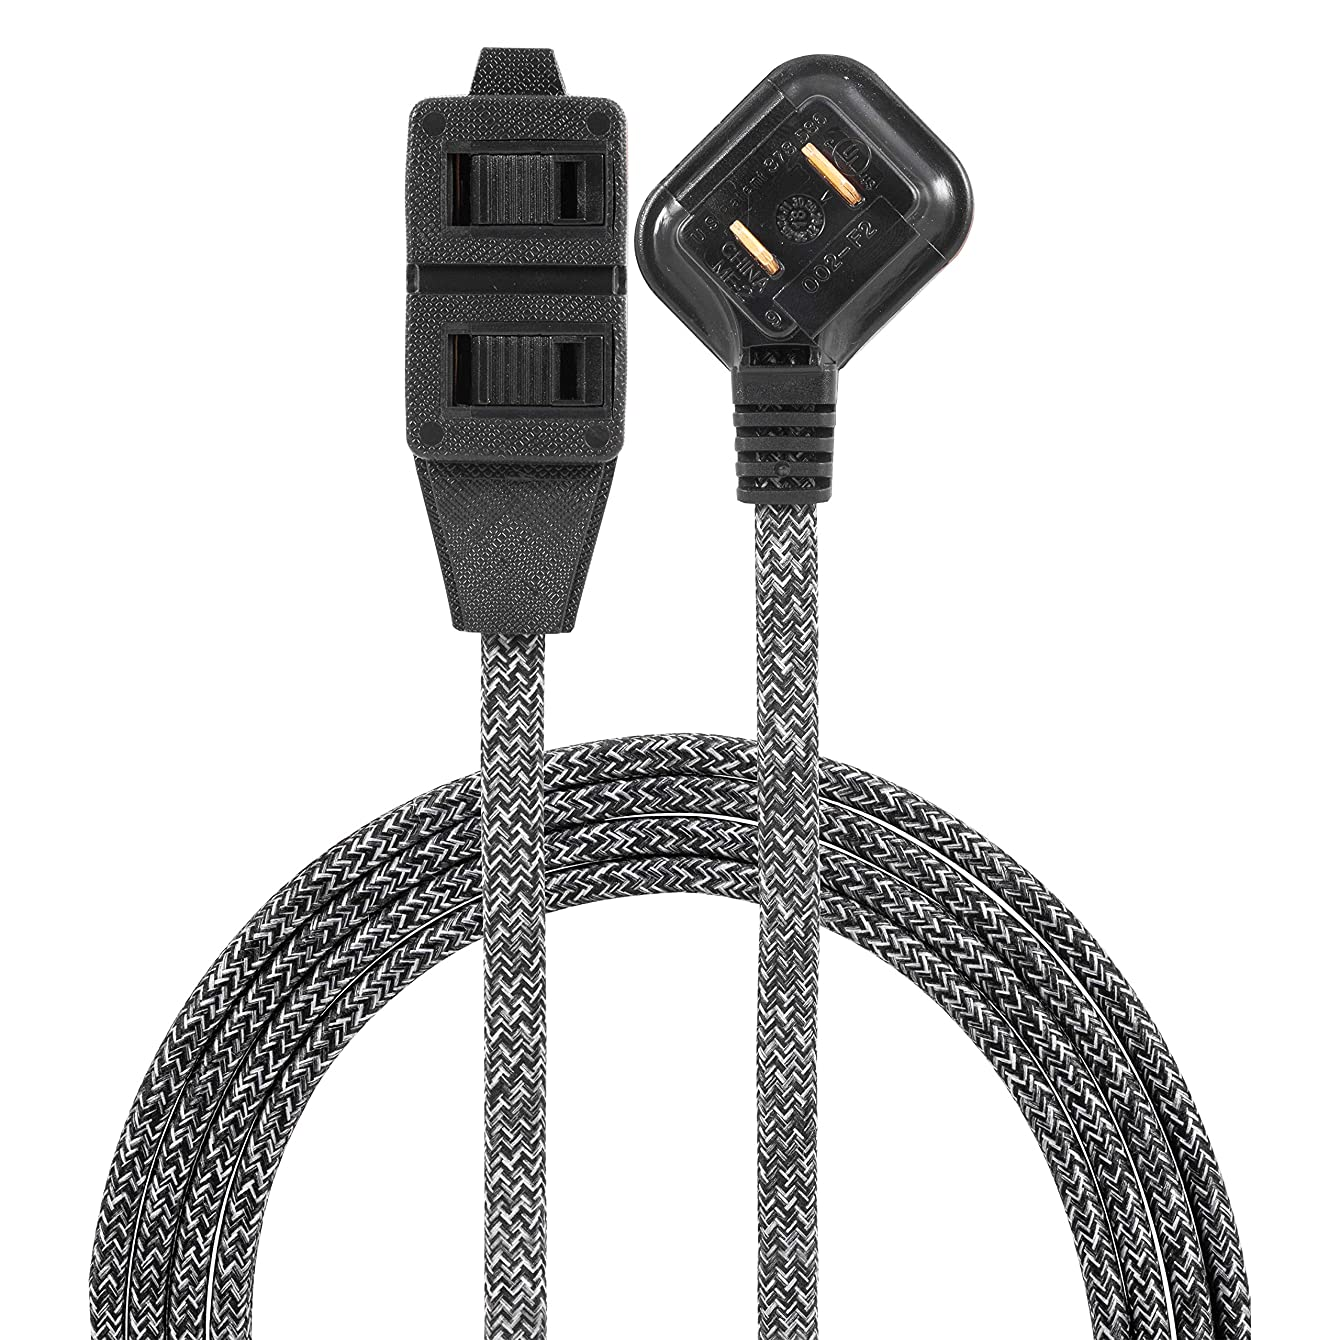 Cordinate Designer 3 Extension, 2 Prong Strip, Extra Long 8 Ft Power Flat Plug, Fabric Braided Cord, Slide-to-Close Safety Outlets, Gray/Black, 42841